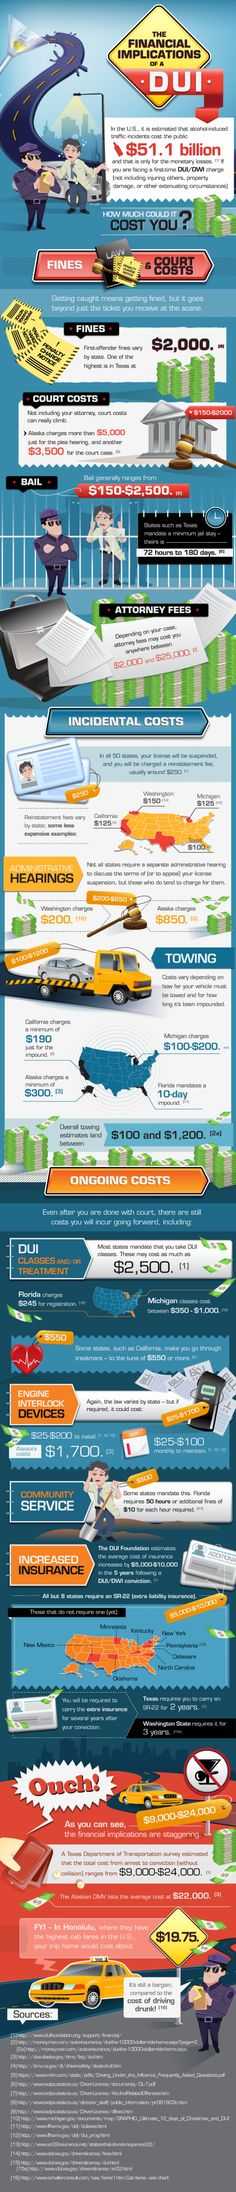 How Much Could a DUI Cost You? [Infographic] The Financial Implications of a DUI Much Could a DUI Cost You? [Infographic] The Financial Implications of a DUIThe Financial Implications of a DUI Alcohol Facts, Alcohol Awareness, Substance Abuse Counseling, Red Ribbon Week, Dont Drink And Drive, Nicotine Addiction, Thing 1, Addiction Recovery, Salud